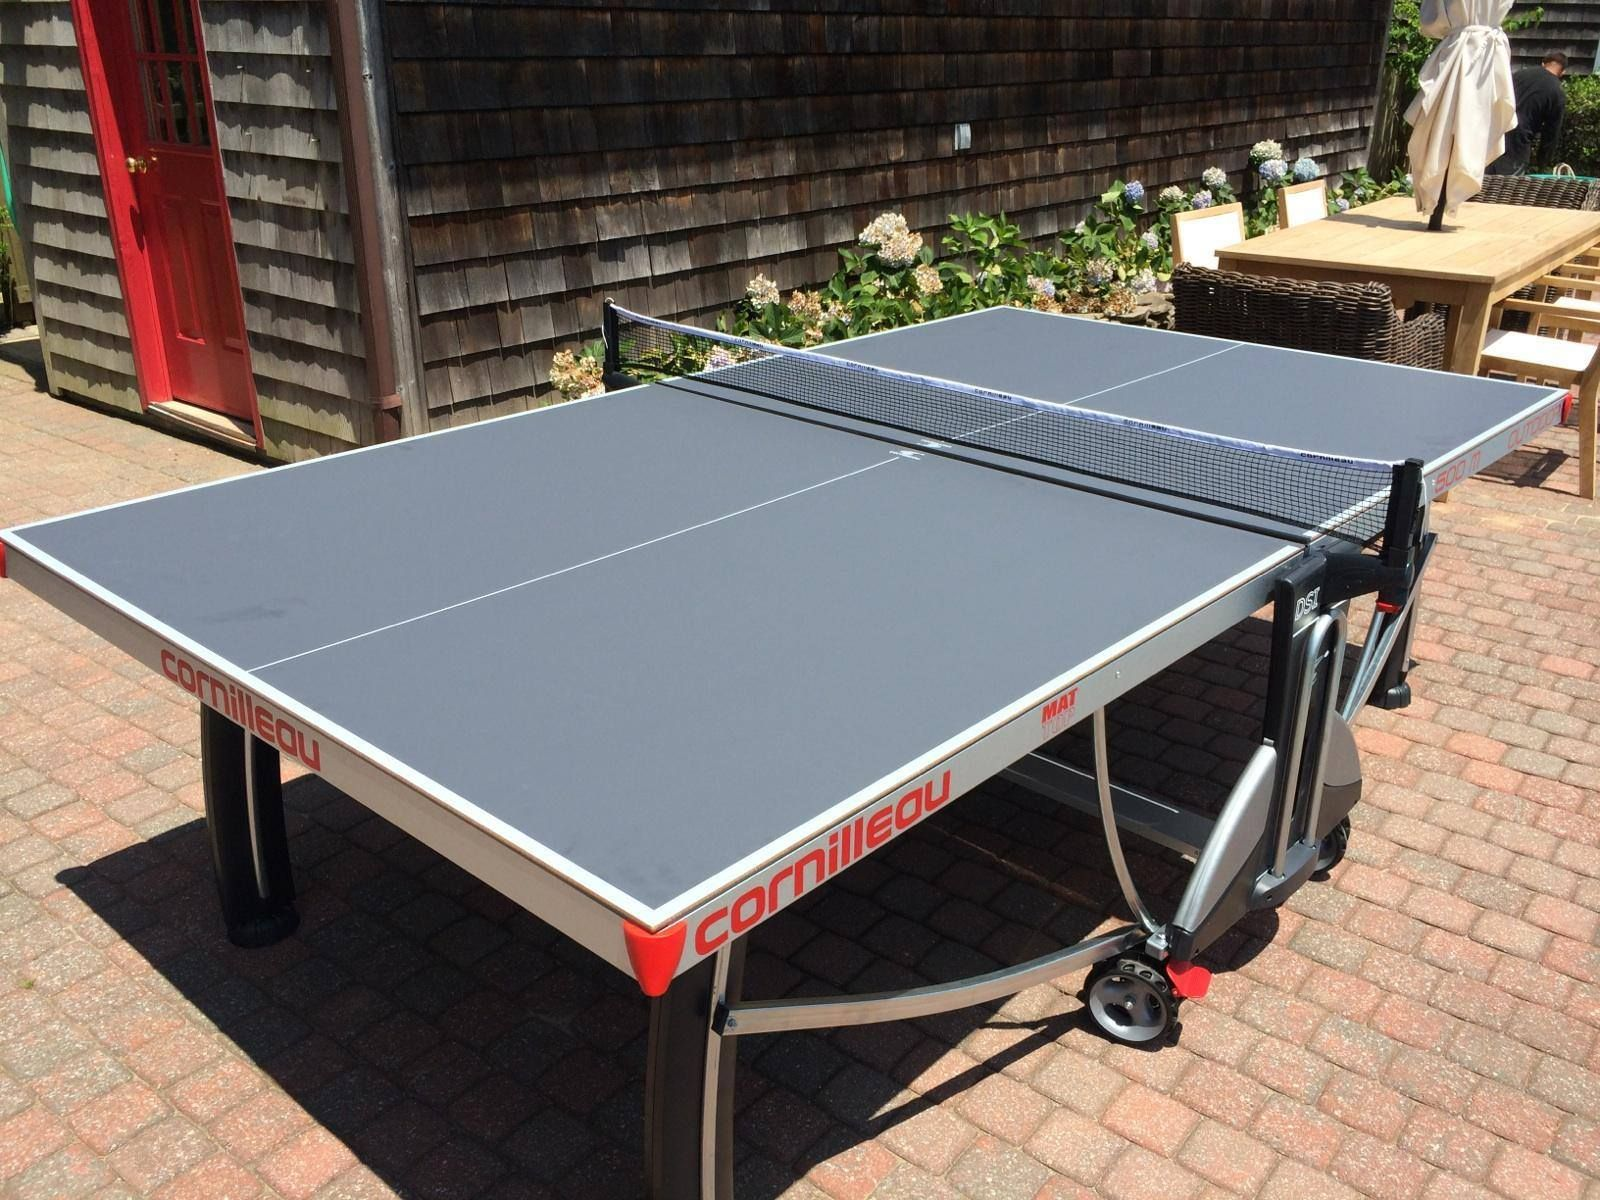 18a9df58c3c369 Cornilleau 500M outdoor table tennis table - SouthHampton, NY   For ...